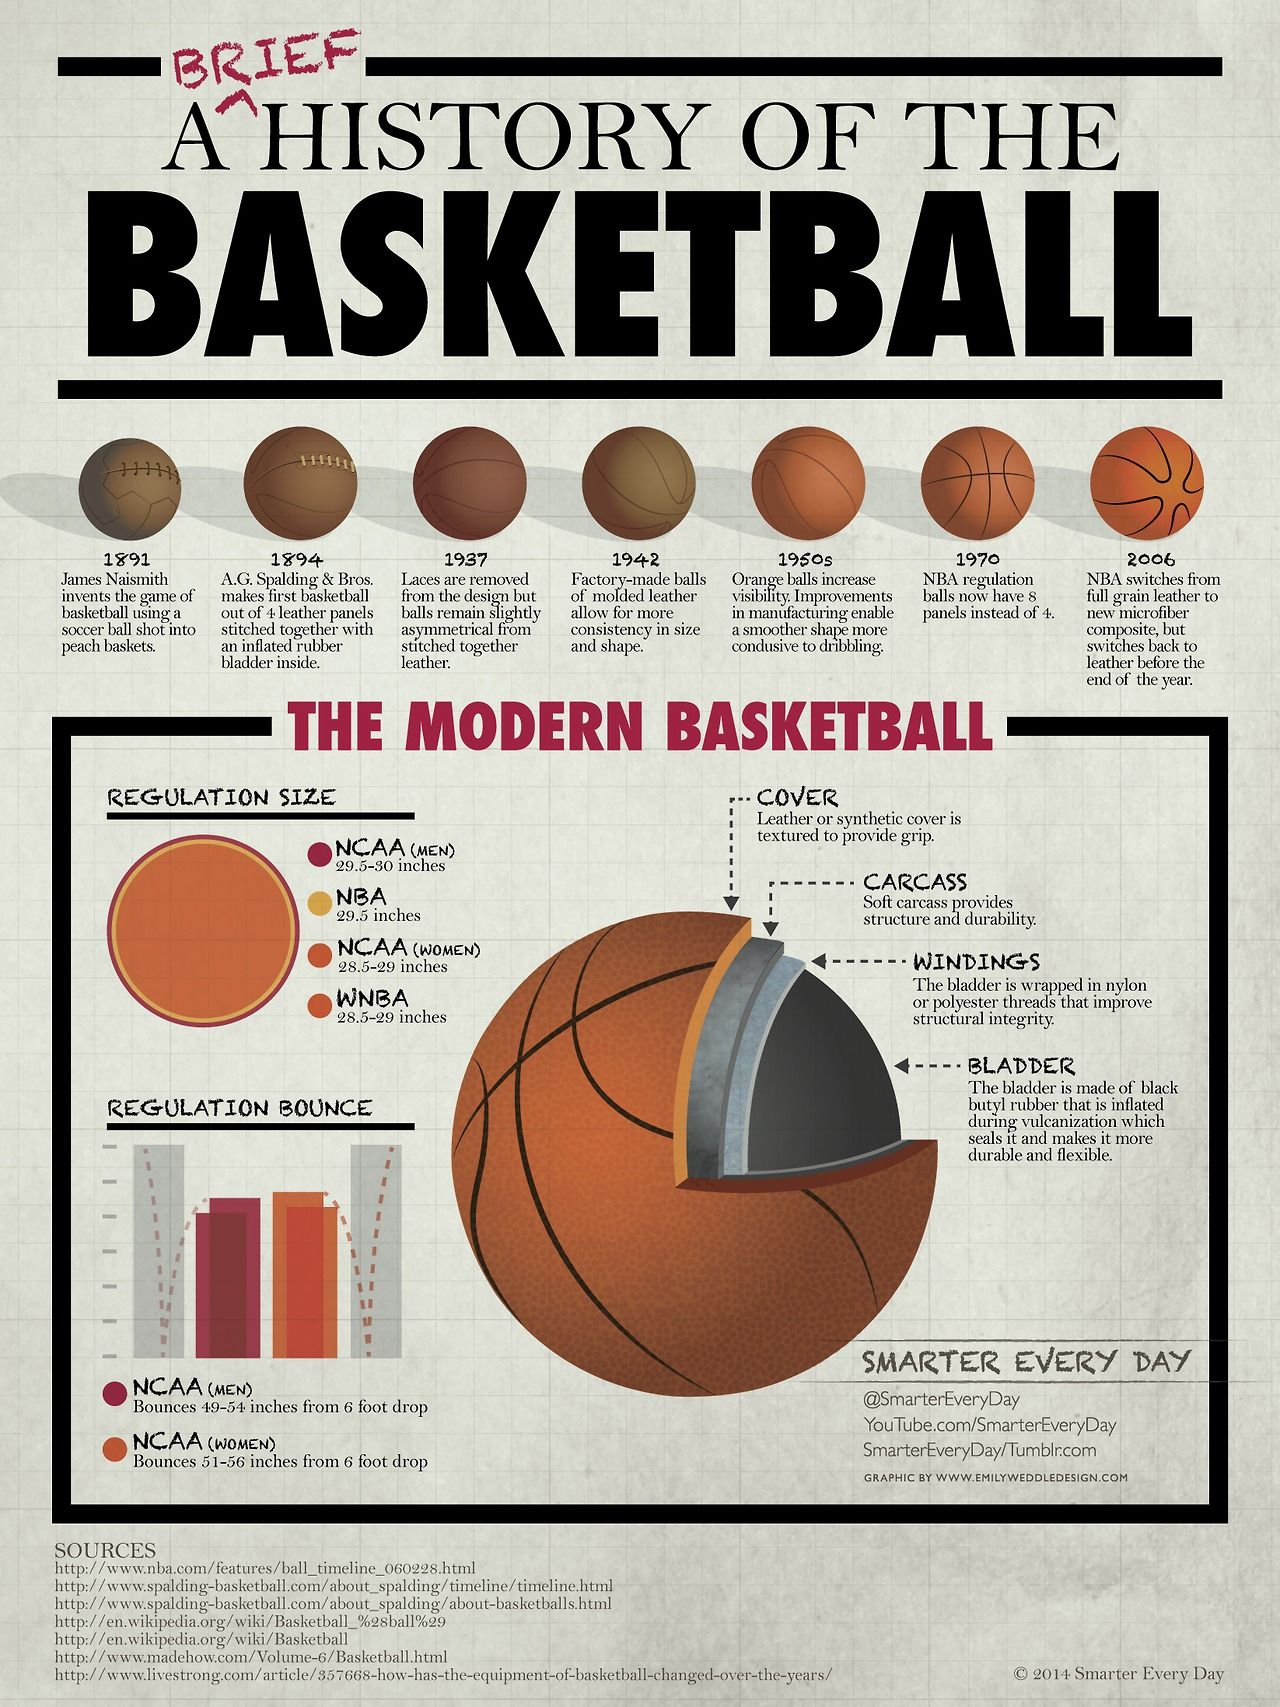 5c38c7495 Introducing March Madness Infographics! First up, a brief history of the  basketball! Lots more coming! Feel free to offer up suggestions .